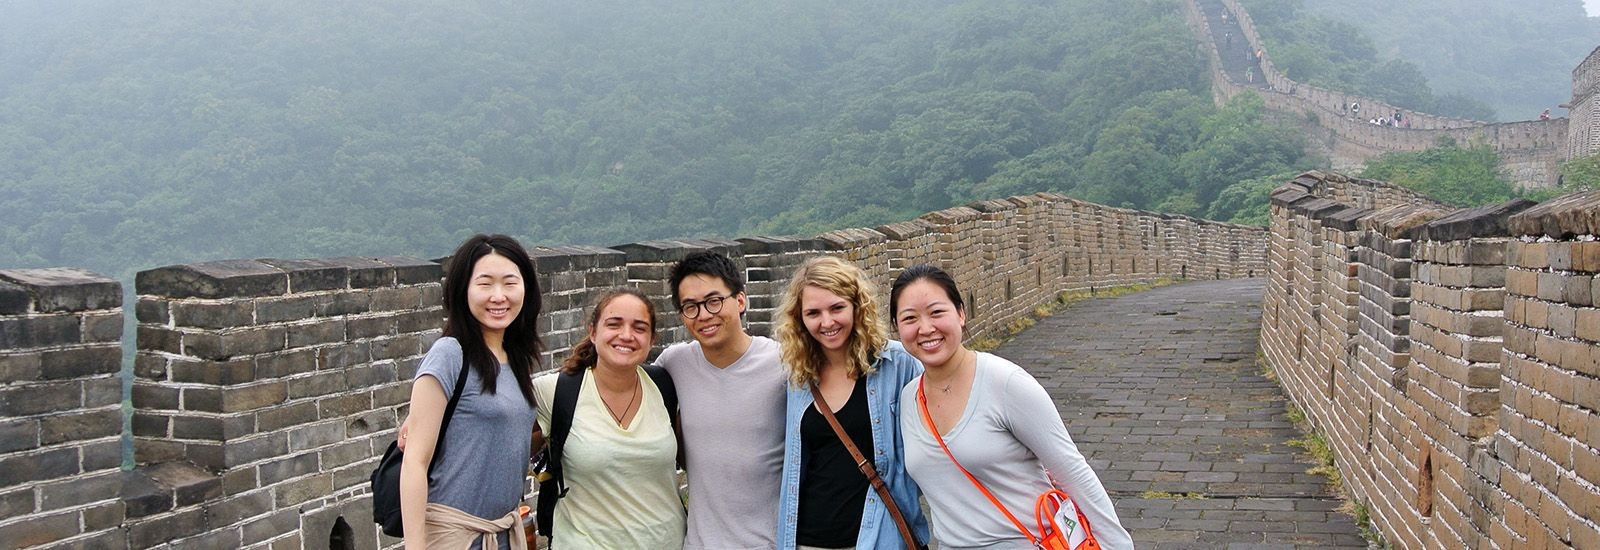 5 students standing on the Great Wall of China